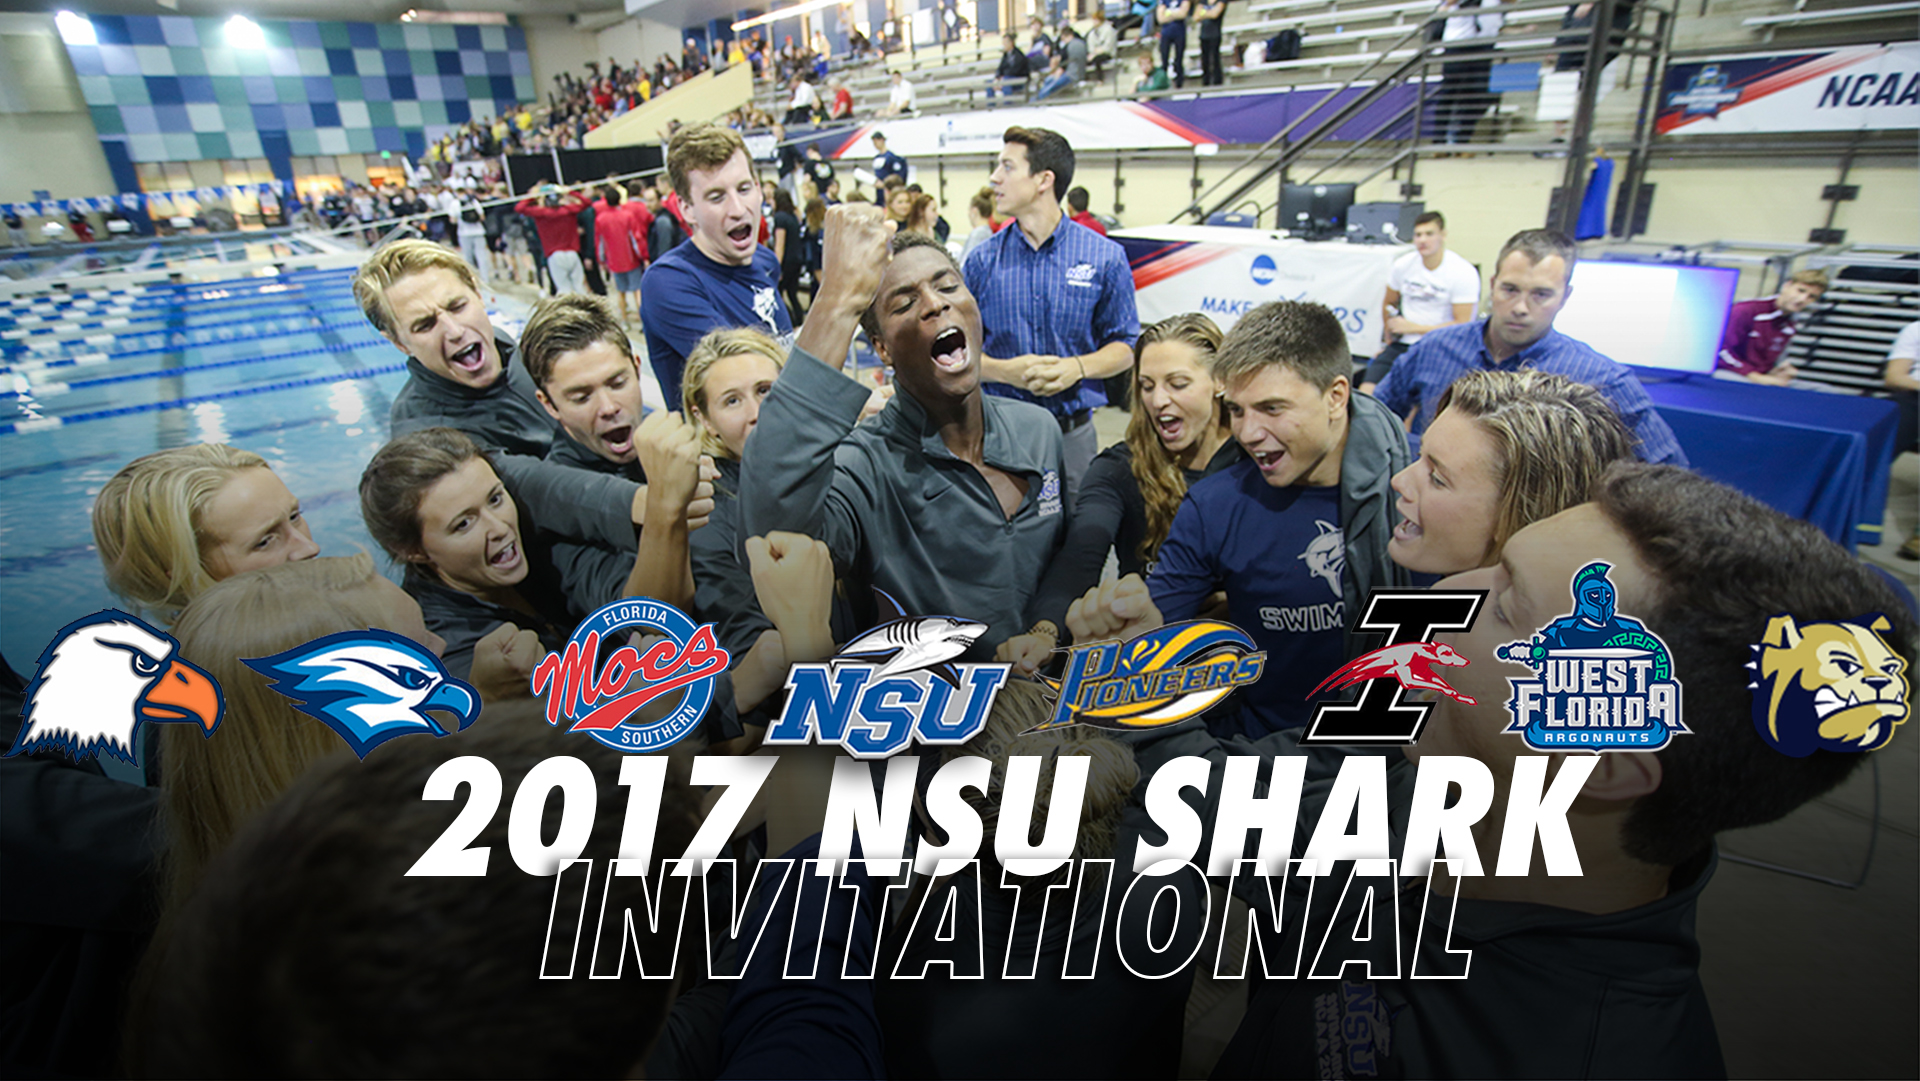 Nsu swimming amped for 2017 shark invitational nsu newsroom - Southeastern college pasay swimming pool ...